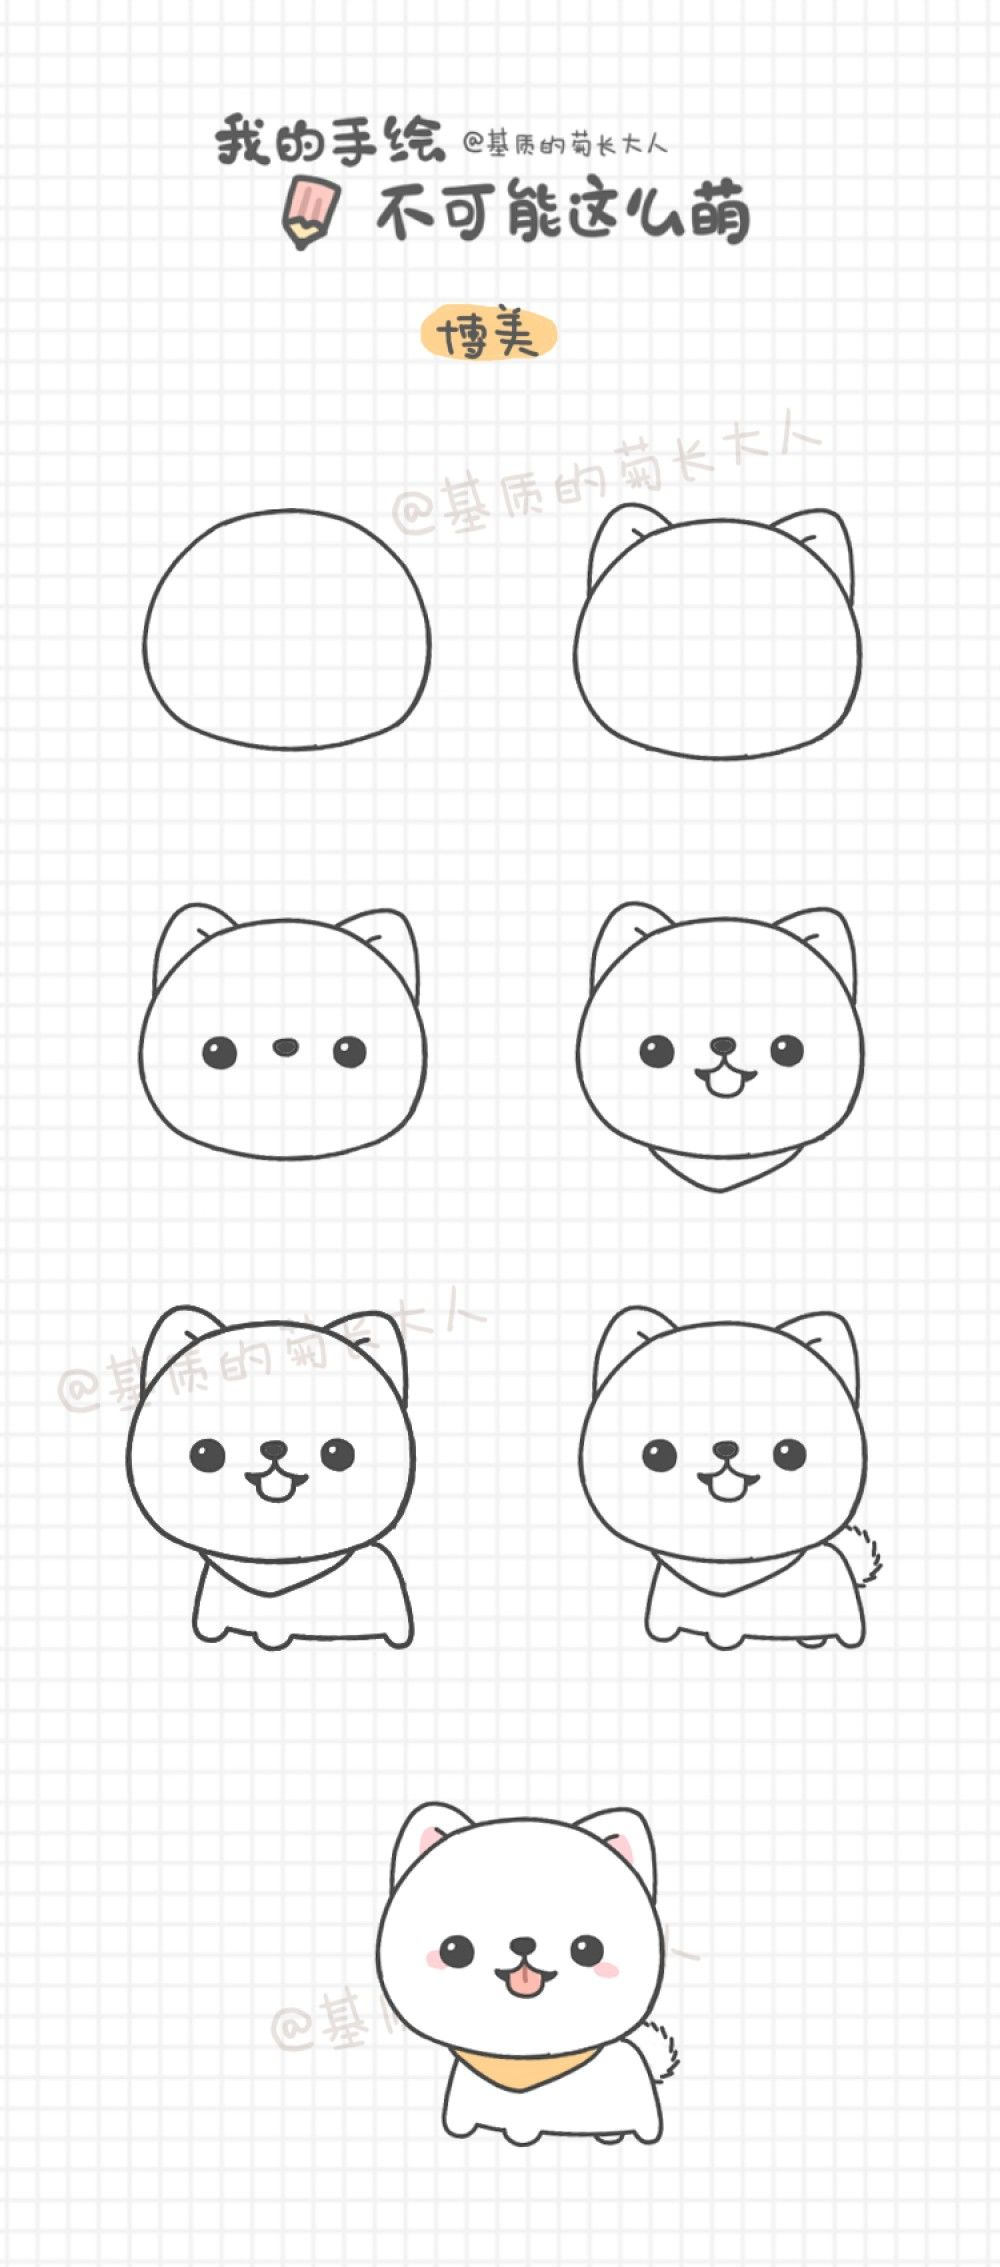 Easy Guide To Drawing Kawaii Characters Part 2 How To Draw Kawaii Animals Critters Expressions Faces Body Poses How To Draw Step By Step Drawing Tuto Cute